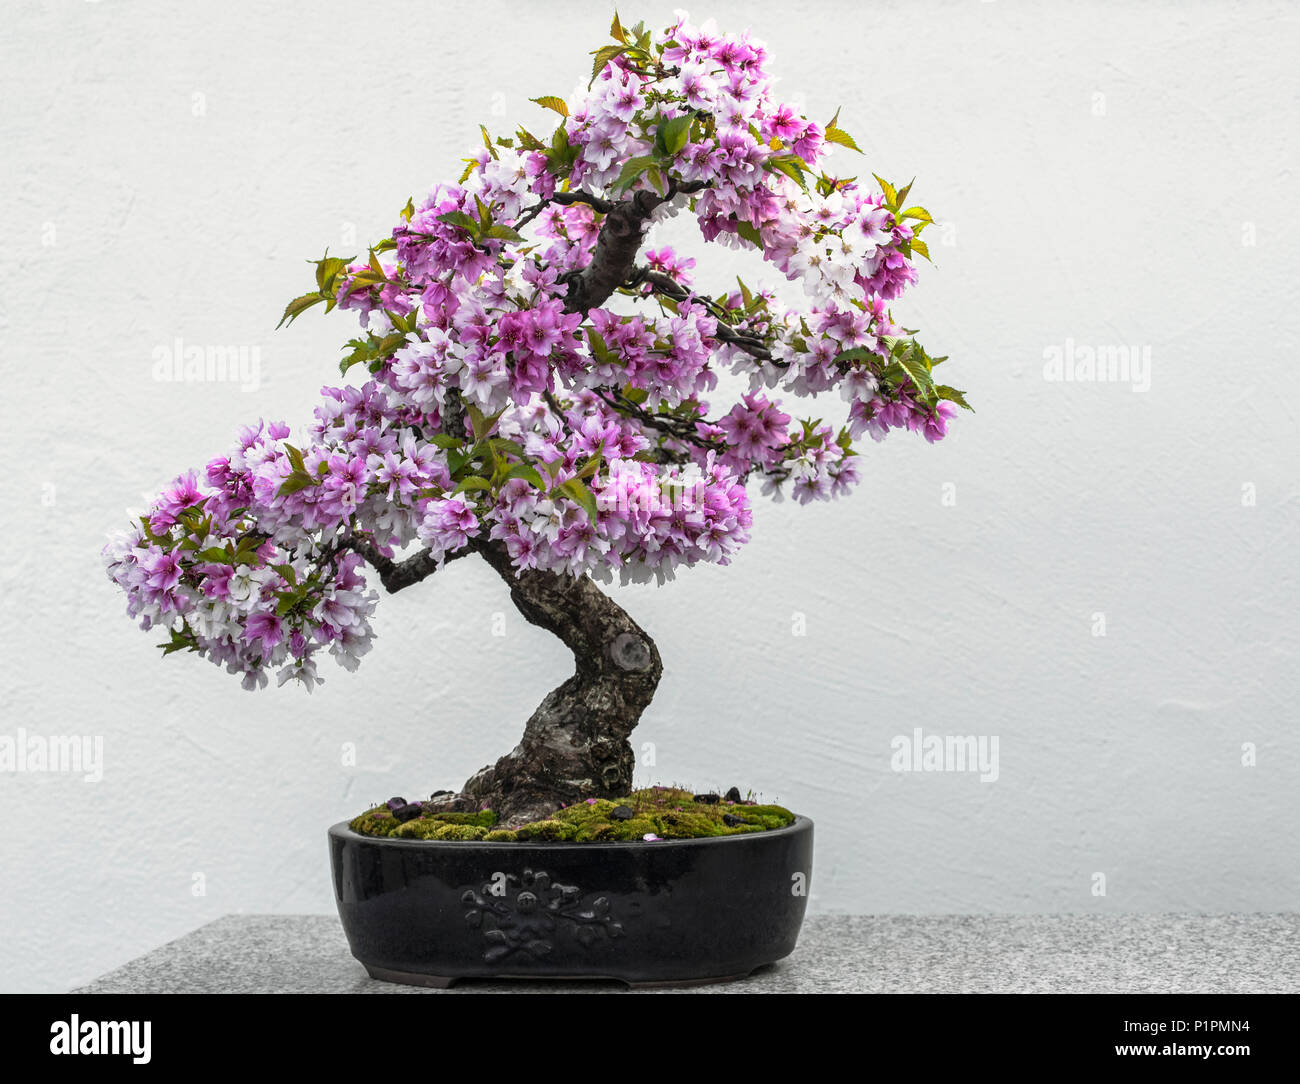 Bonsai Tree With Purple Blossoms Sitting On A Granite Surface Botanical Gardens Montreal Quebec Canada Stock Photo Alamy